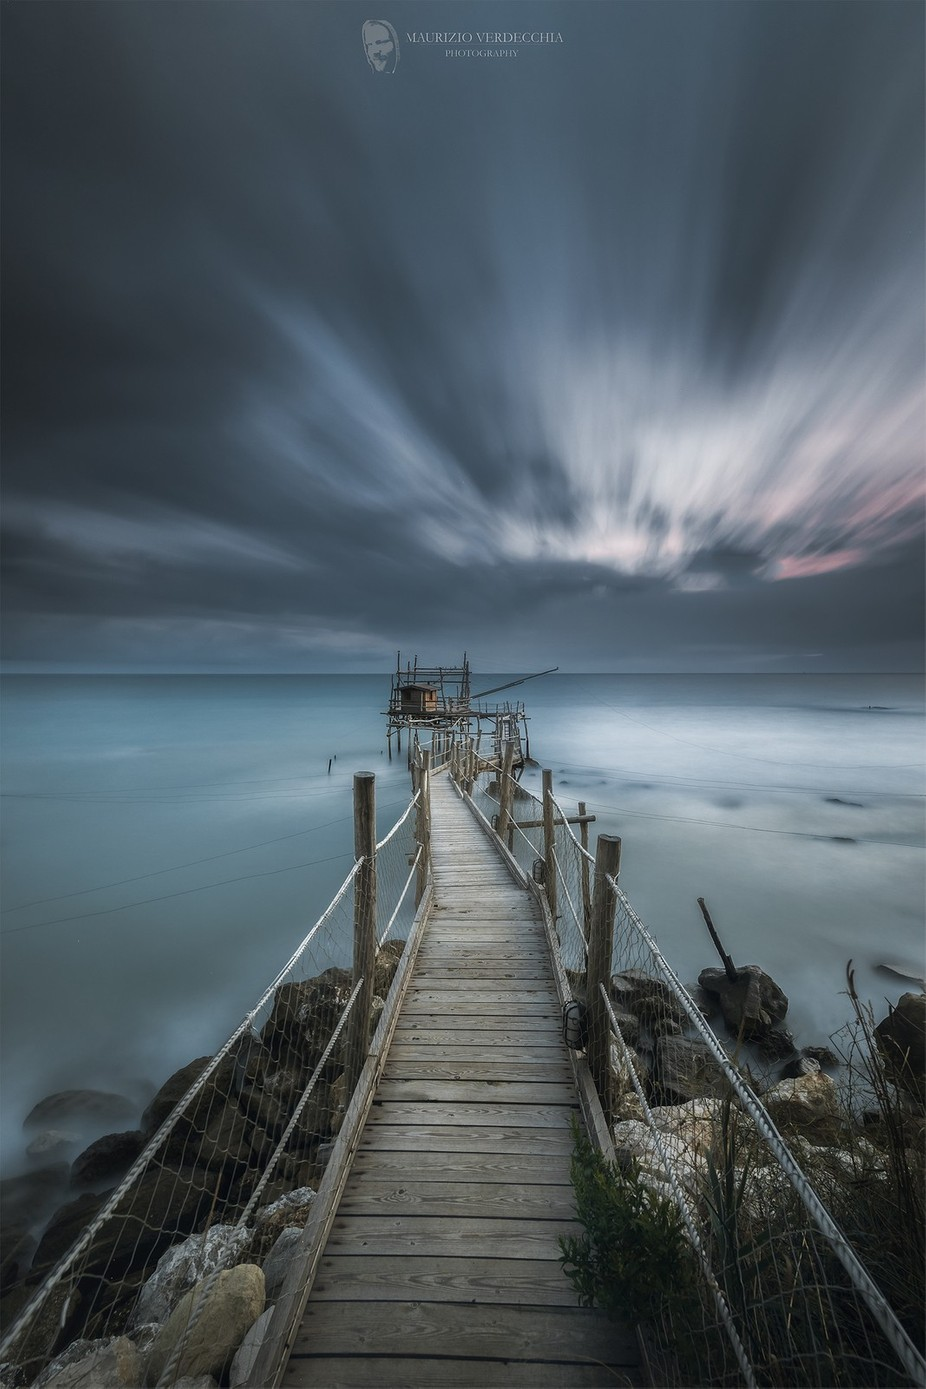 Trabocco Turchino  by maurizioverdecchia - Image Of The Month Photo Contest Vol 27